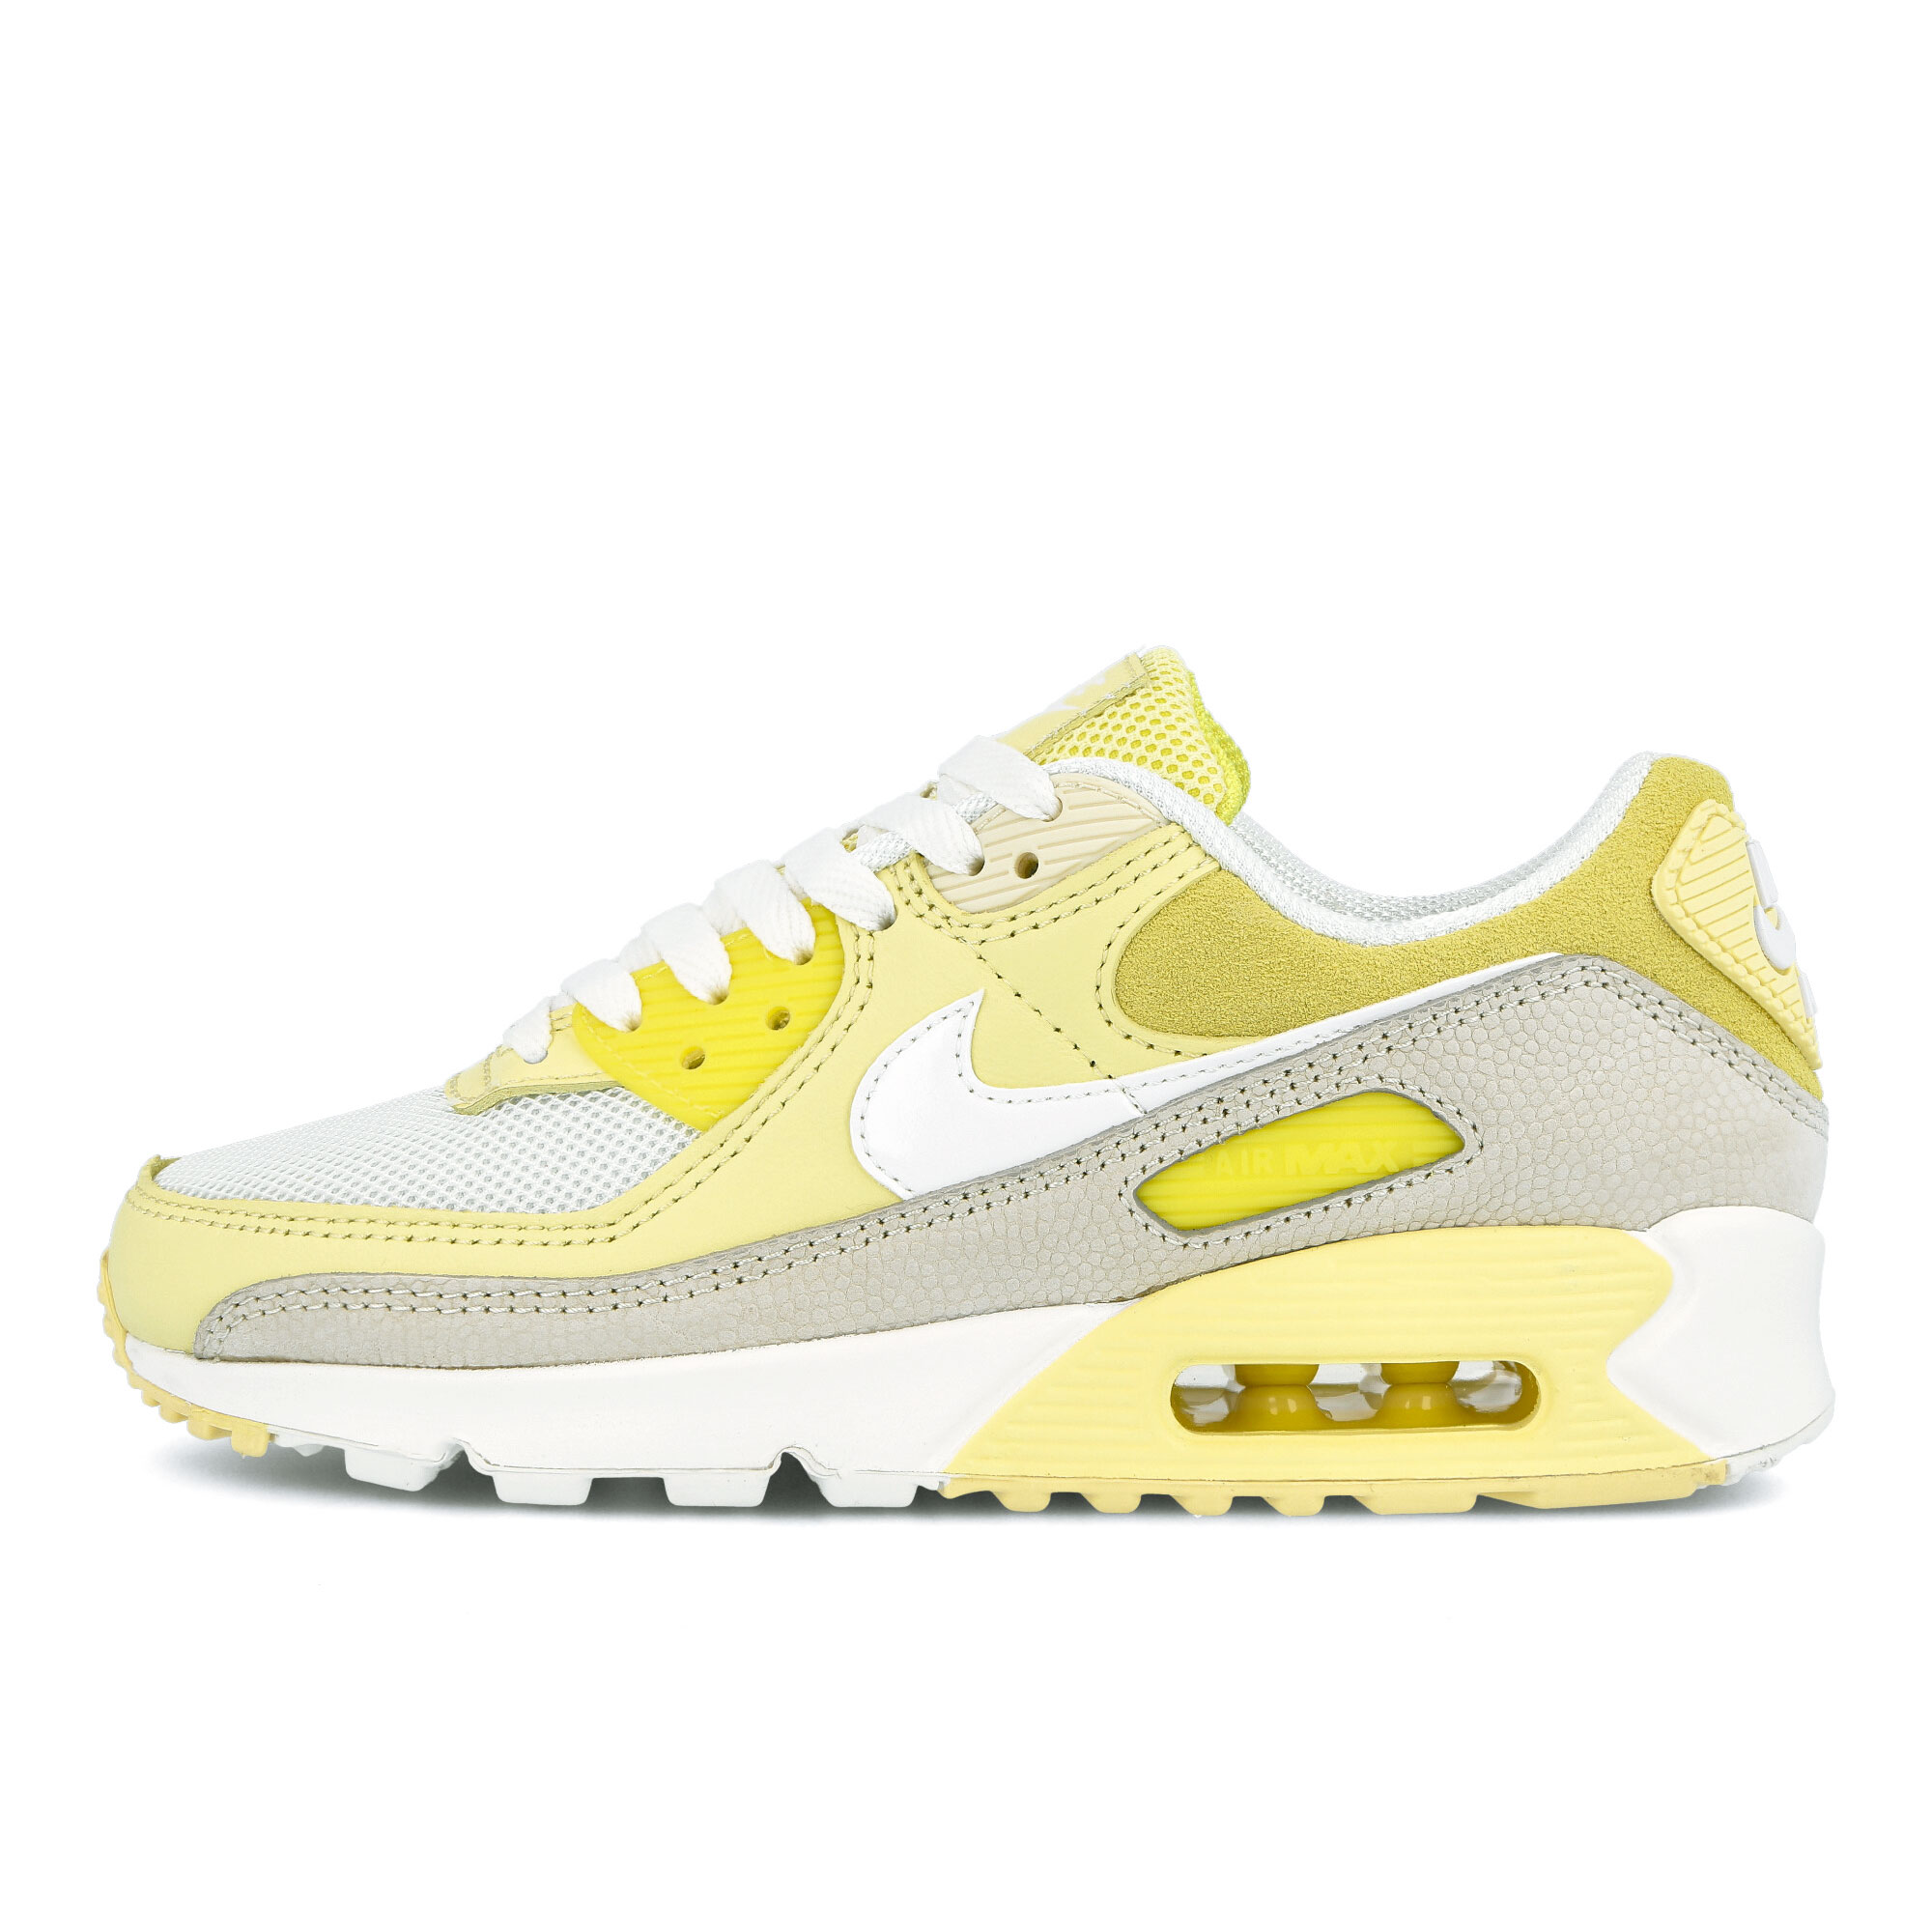 Nike Wmns Air Max 90 ( CW2654 700 ) | OVERKILL